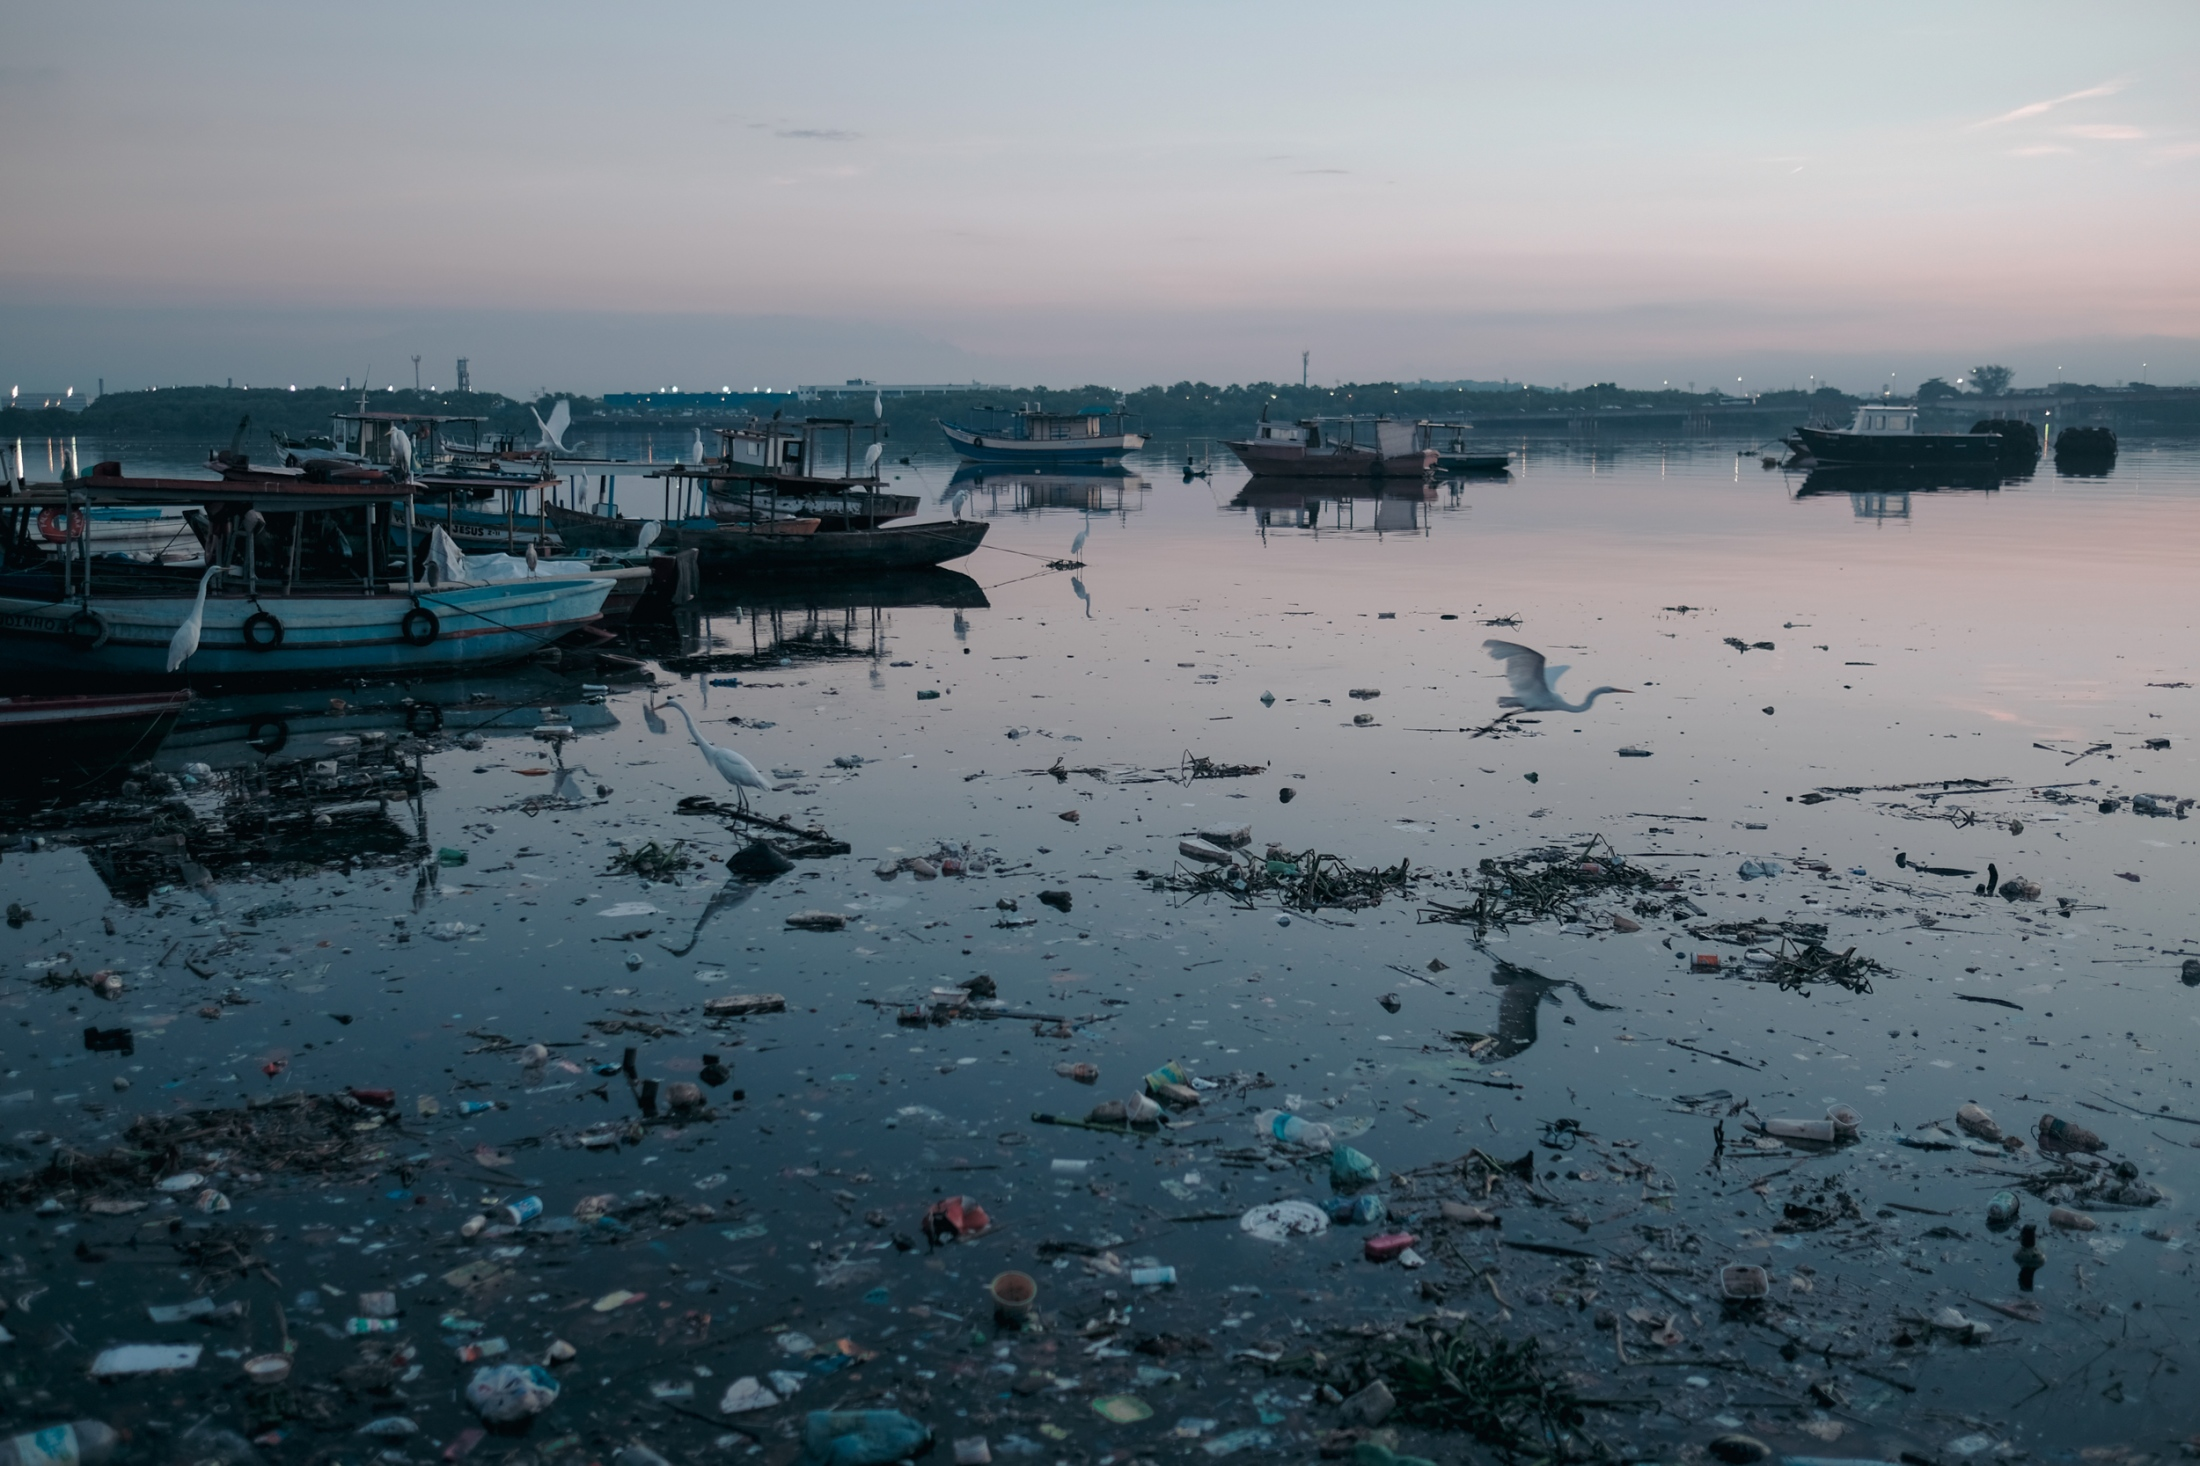 Artisanal Fishing Colony Z-11 sits on the edge of the Guanabara Bay facing Governor's island and Rio de Janeiro's international airport. It is currently the most polluted part of the bay.